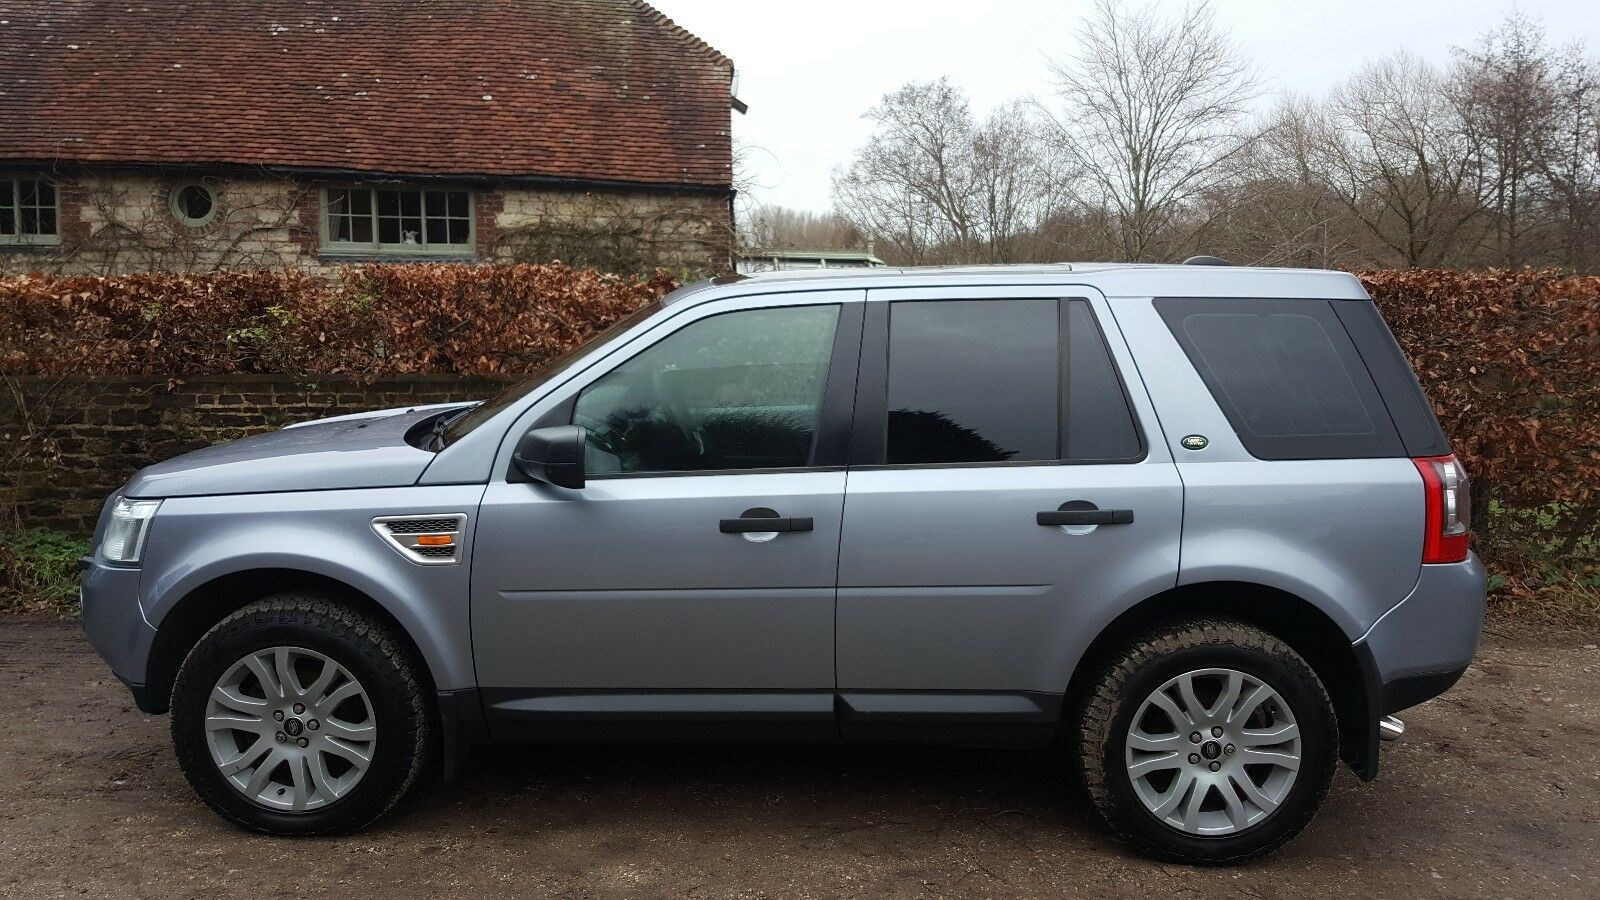 2007 land rover freelander 2 td4 2 2 diesel hse auto with tow bar no reserve 4. Black Bedroom Furniture Sets. Home Design Ideas